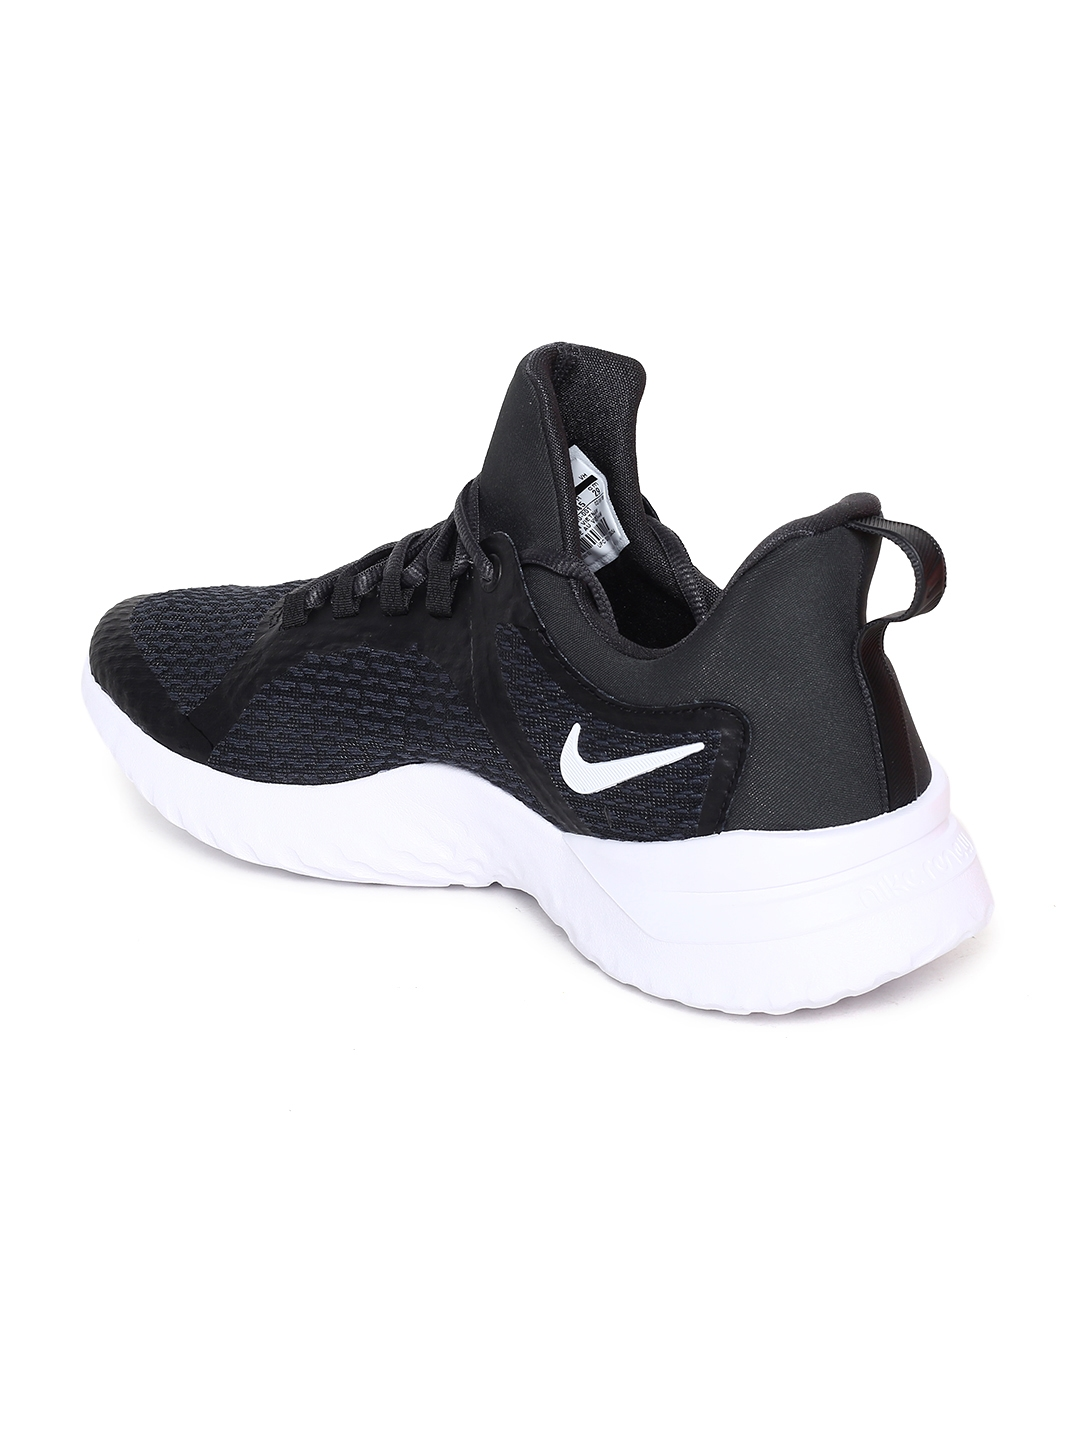 Buy Nike Men Navy   Black Renew Rival Running Shoes - Sports Shoes ... 7e7290c4d